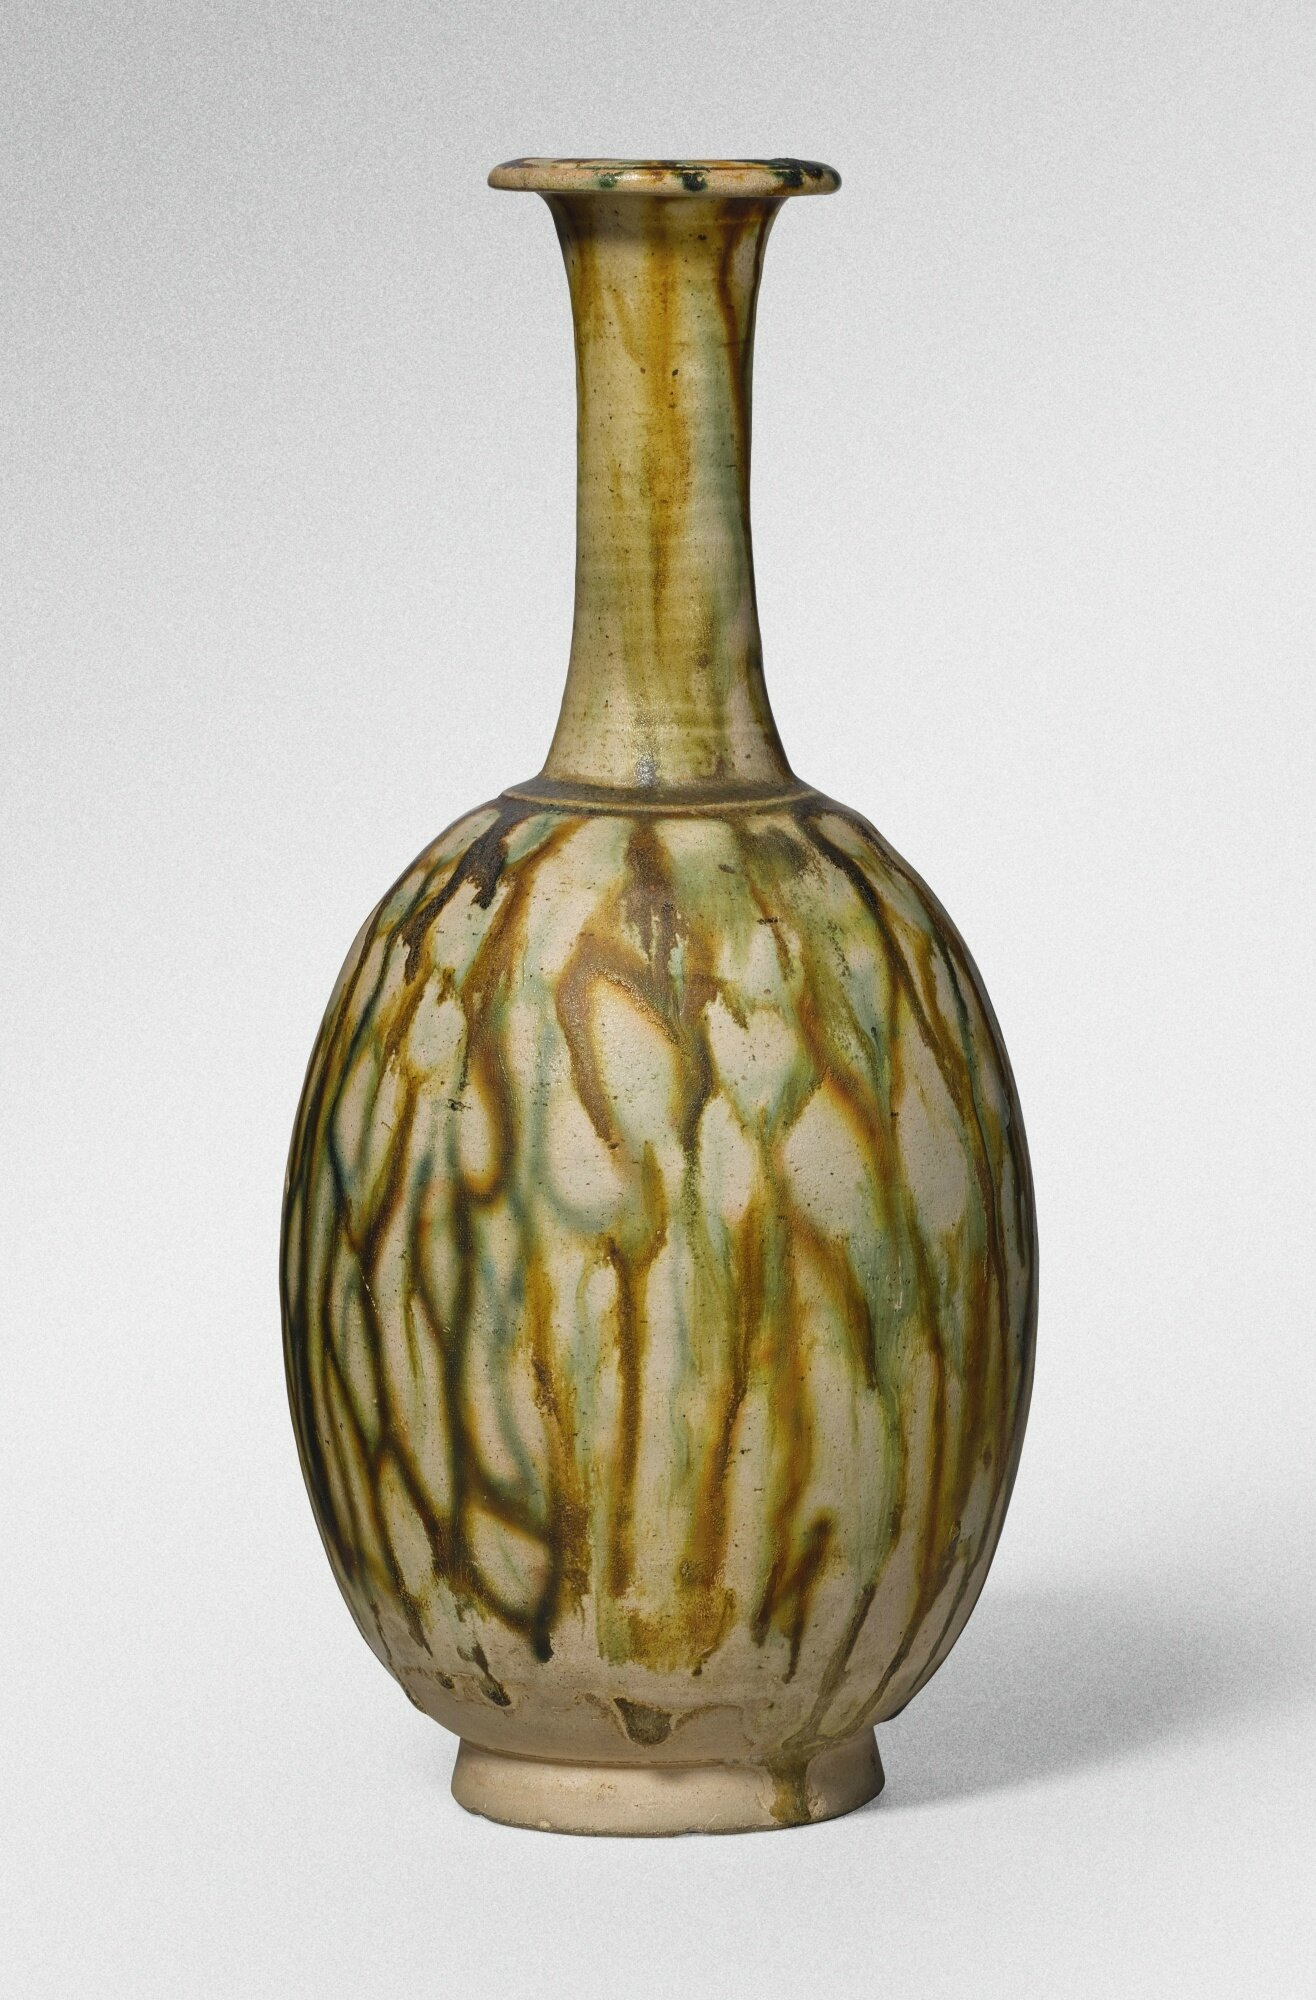 A sancai-glazed pottery, bottle vase, Tang dynasty